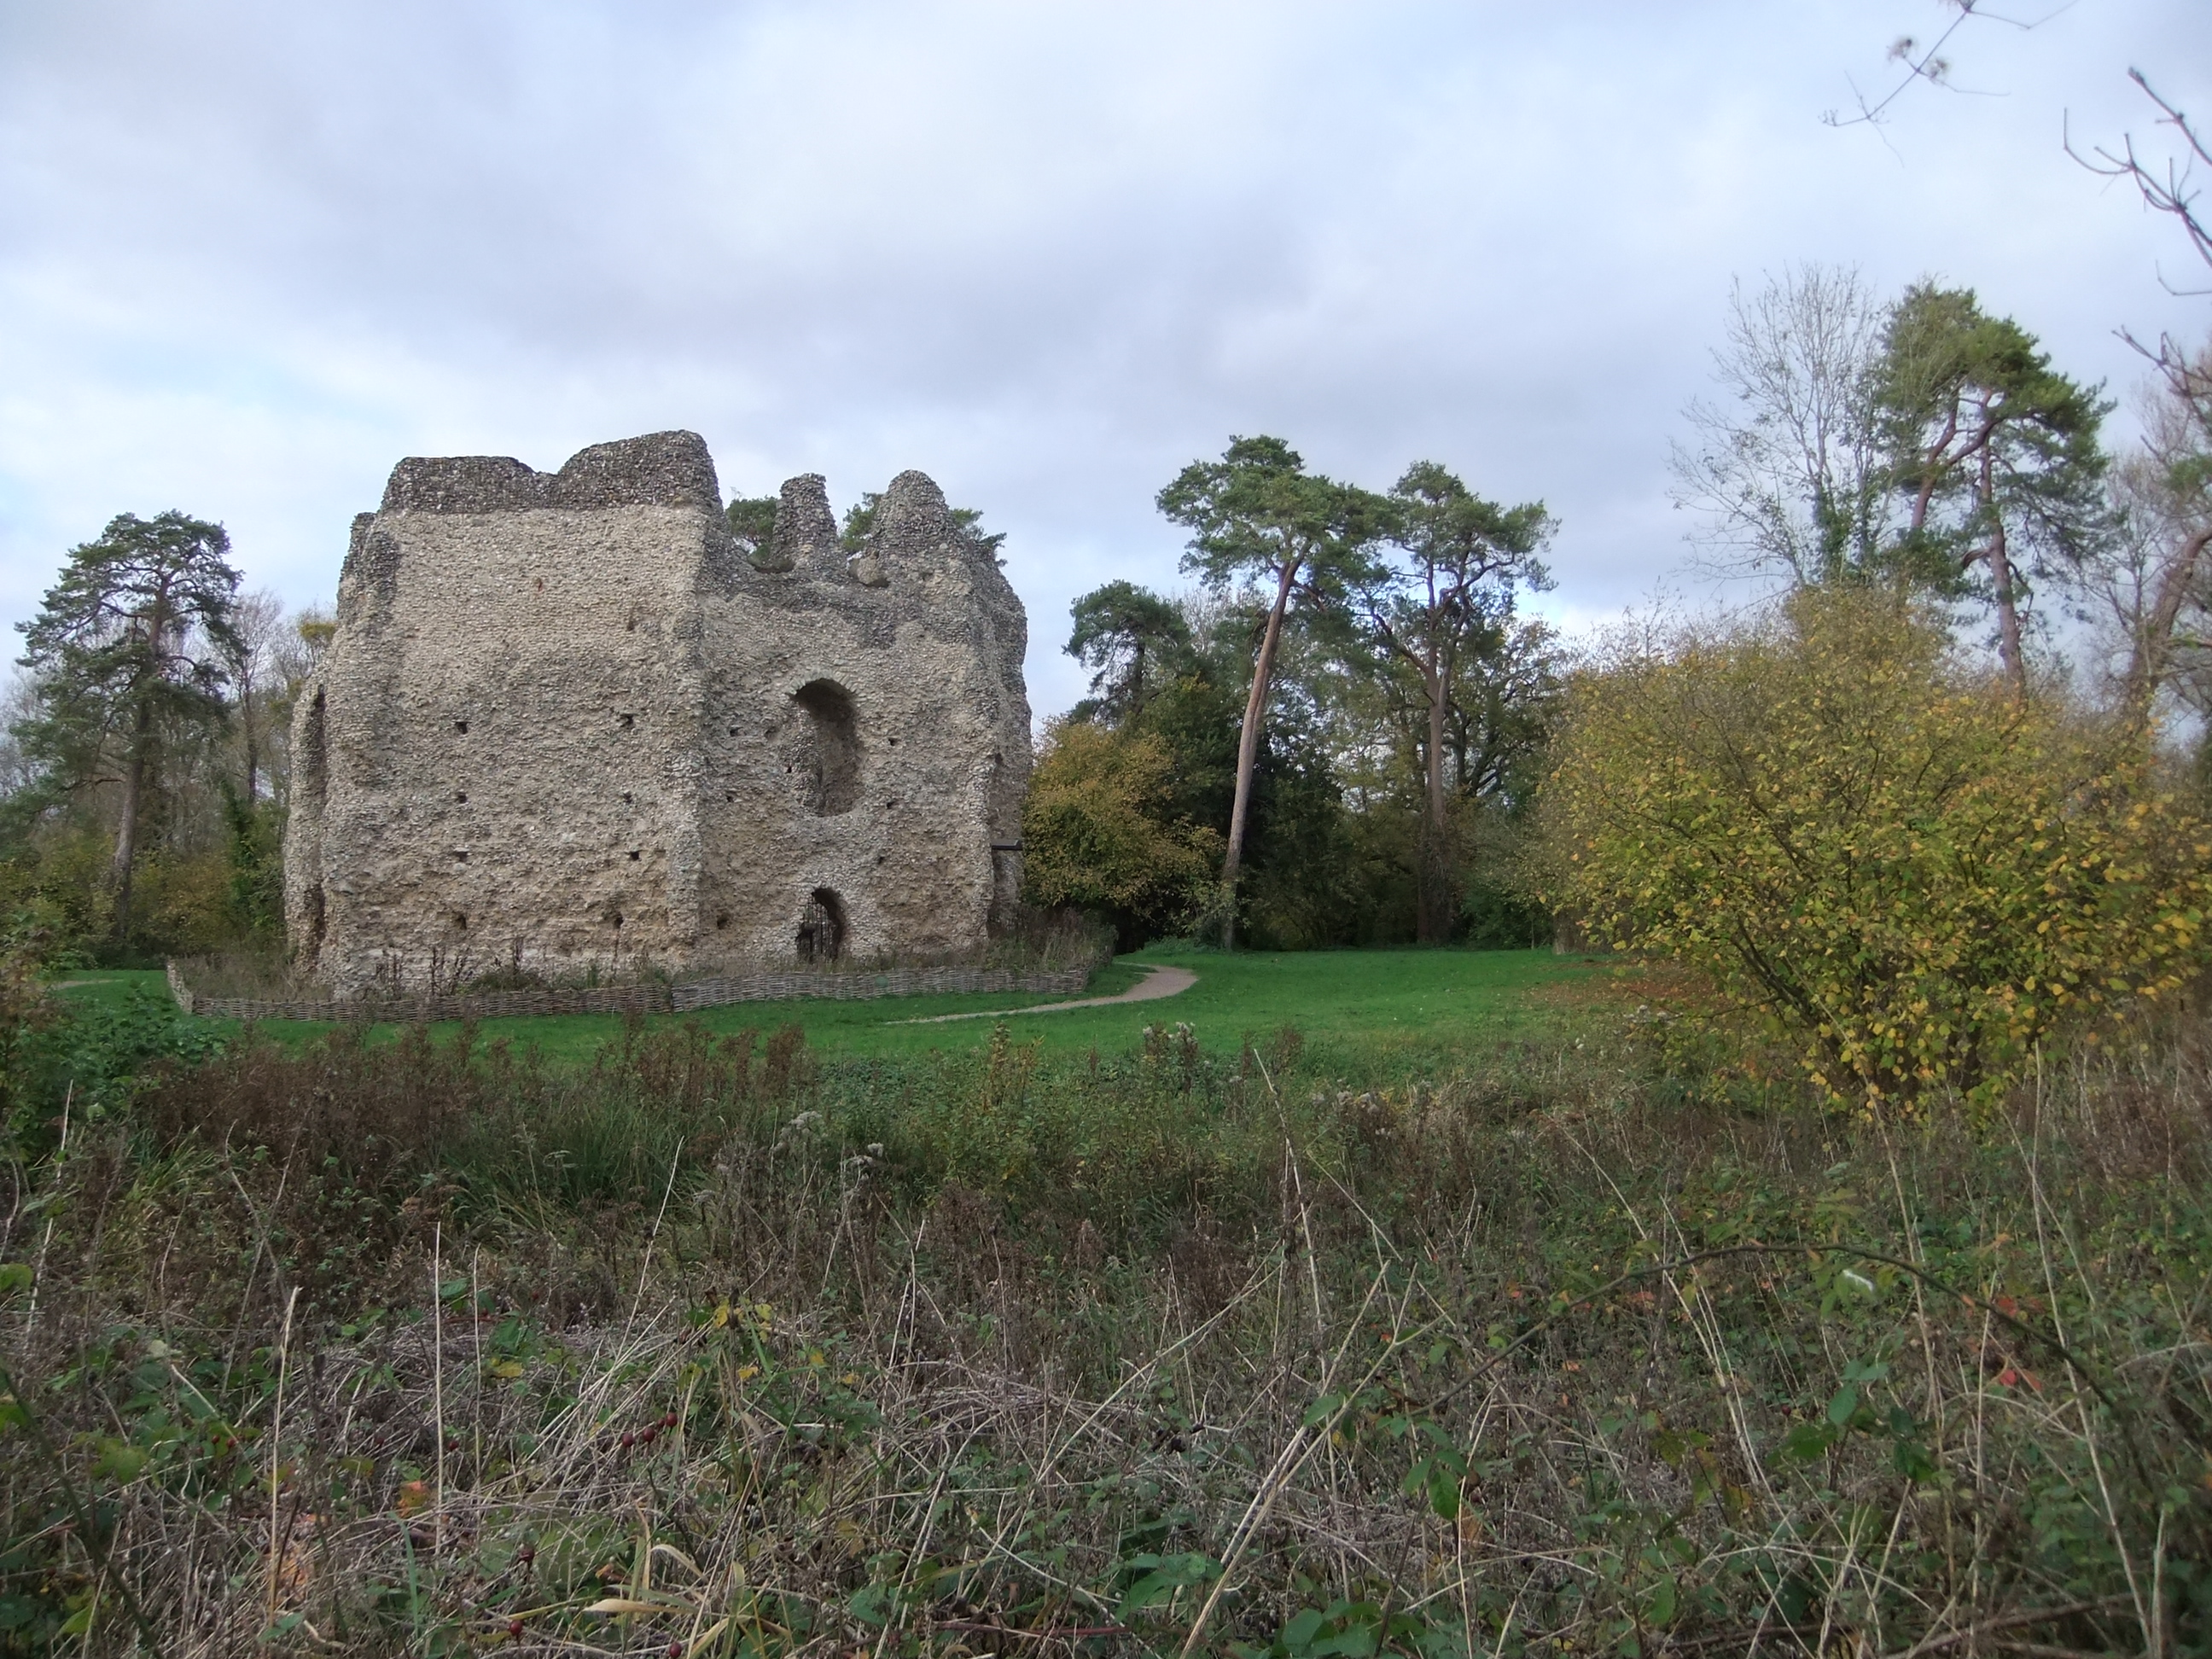 Odiham Castle on the Dogmersfield Riding, the pines may be William Emes' planting